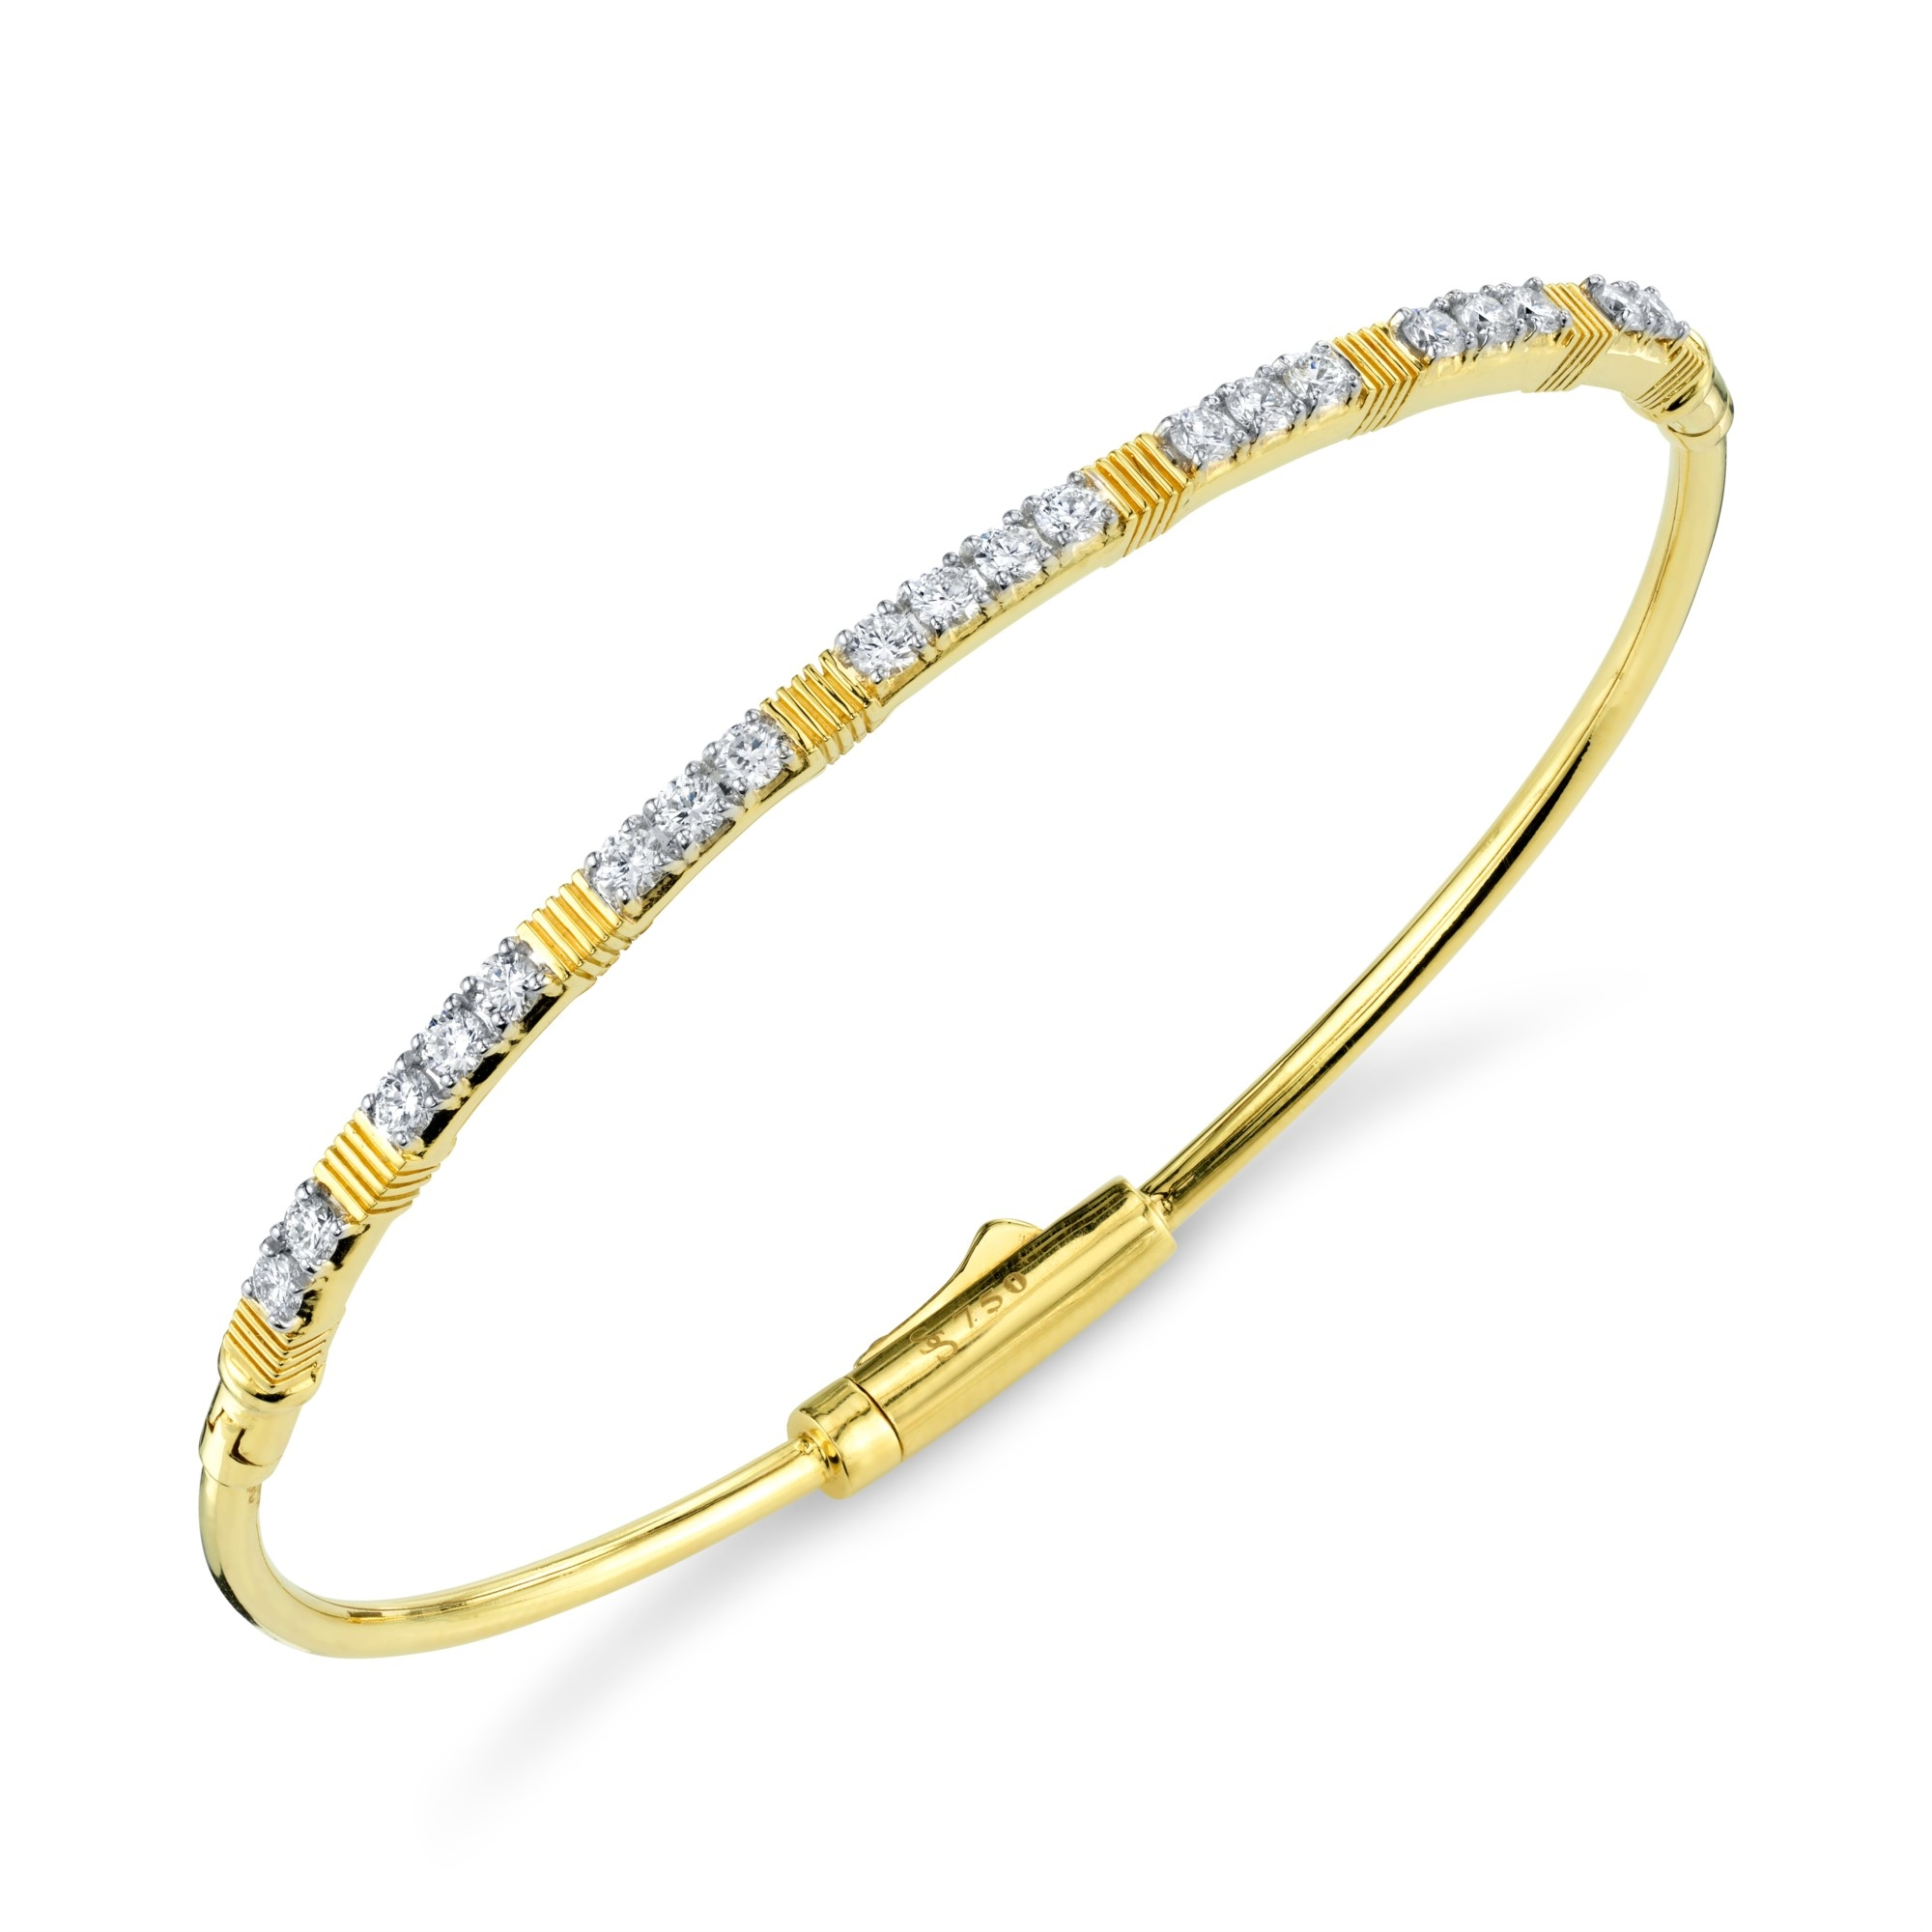 Sloane Street 18K Yellow Gold .79cts  Diamonds Gold Bangle with Stones B031E-WDCB-Y